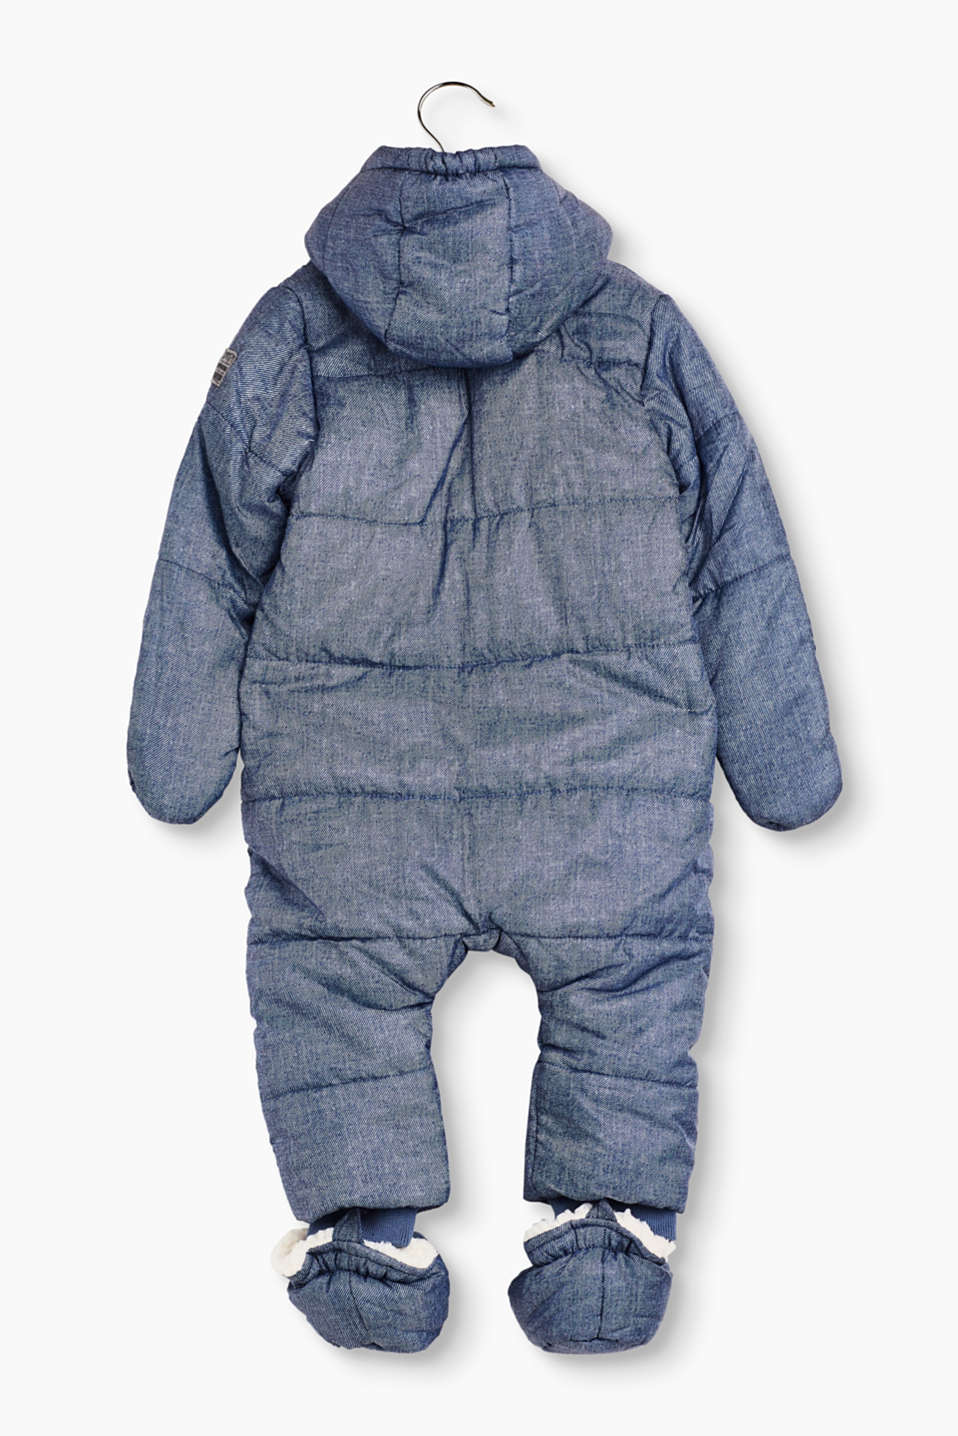 Padded snow suit in a denim look